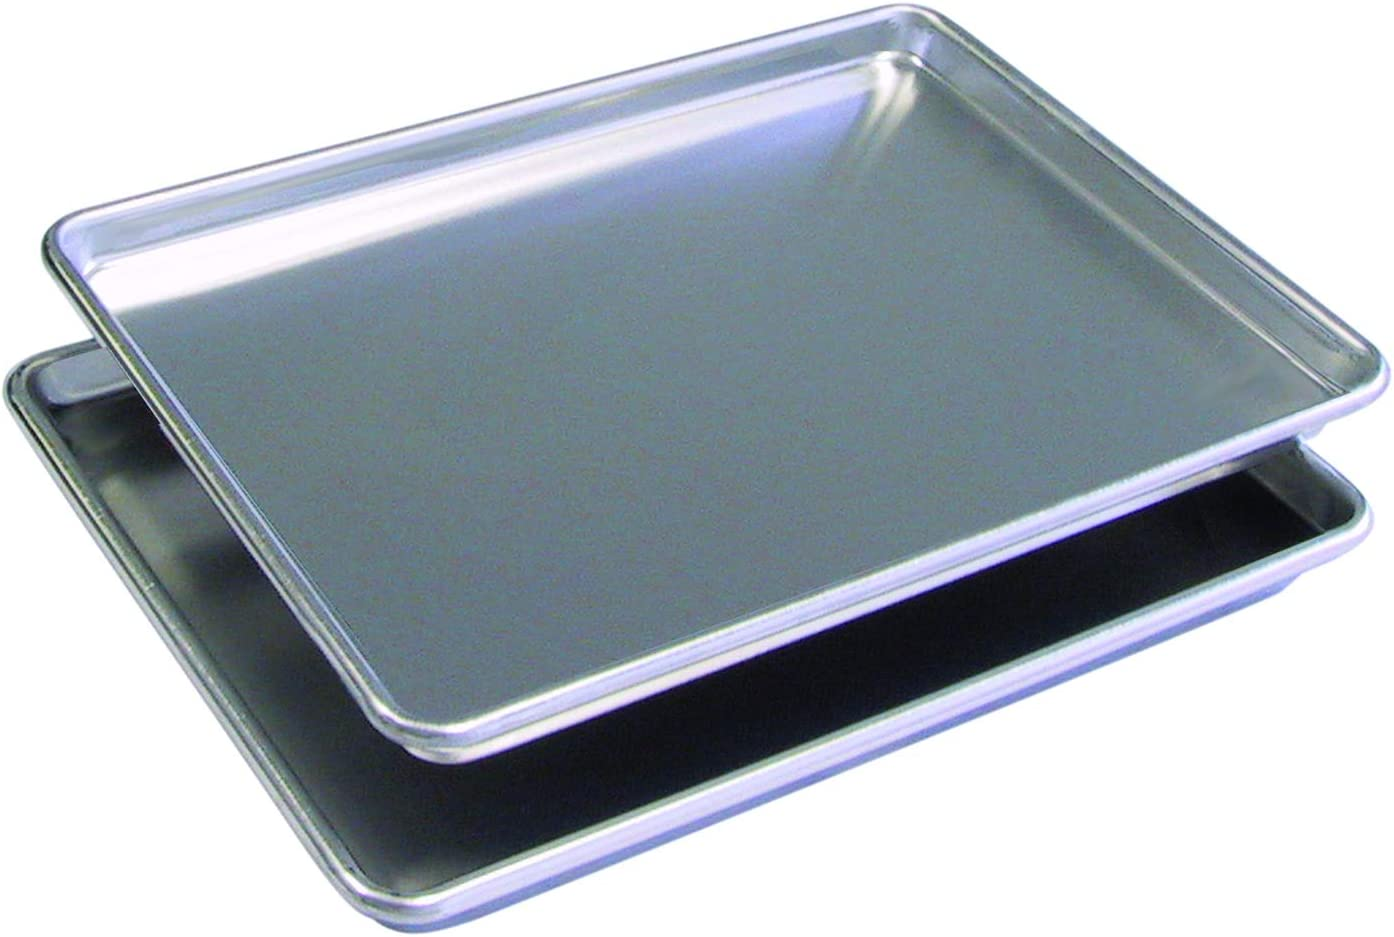 Kansas City Mall Broil King Commercial Half Sized Set 2 Manufacturer direct delivery Pans of Sheet